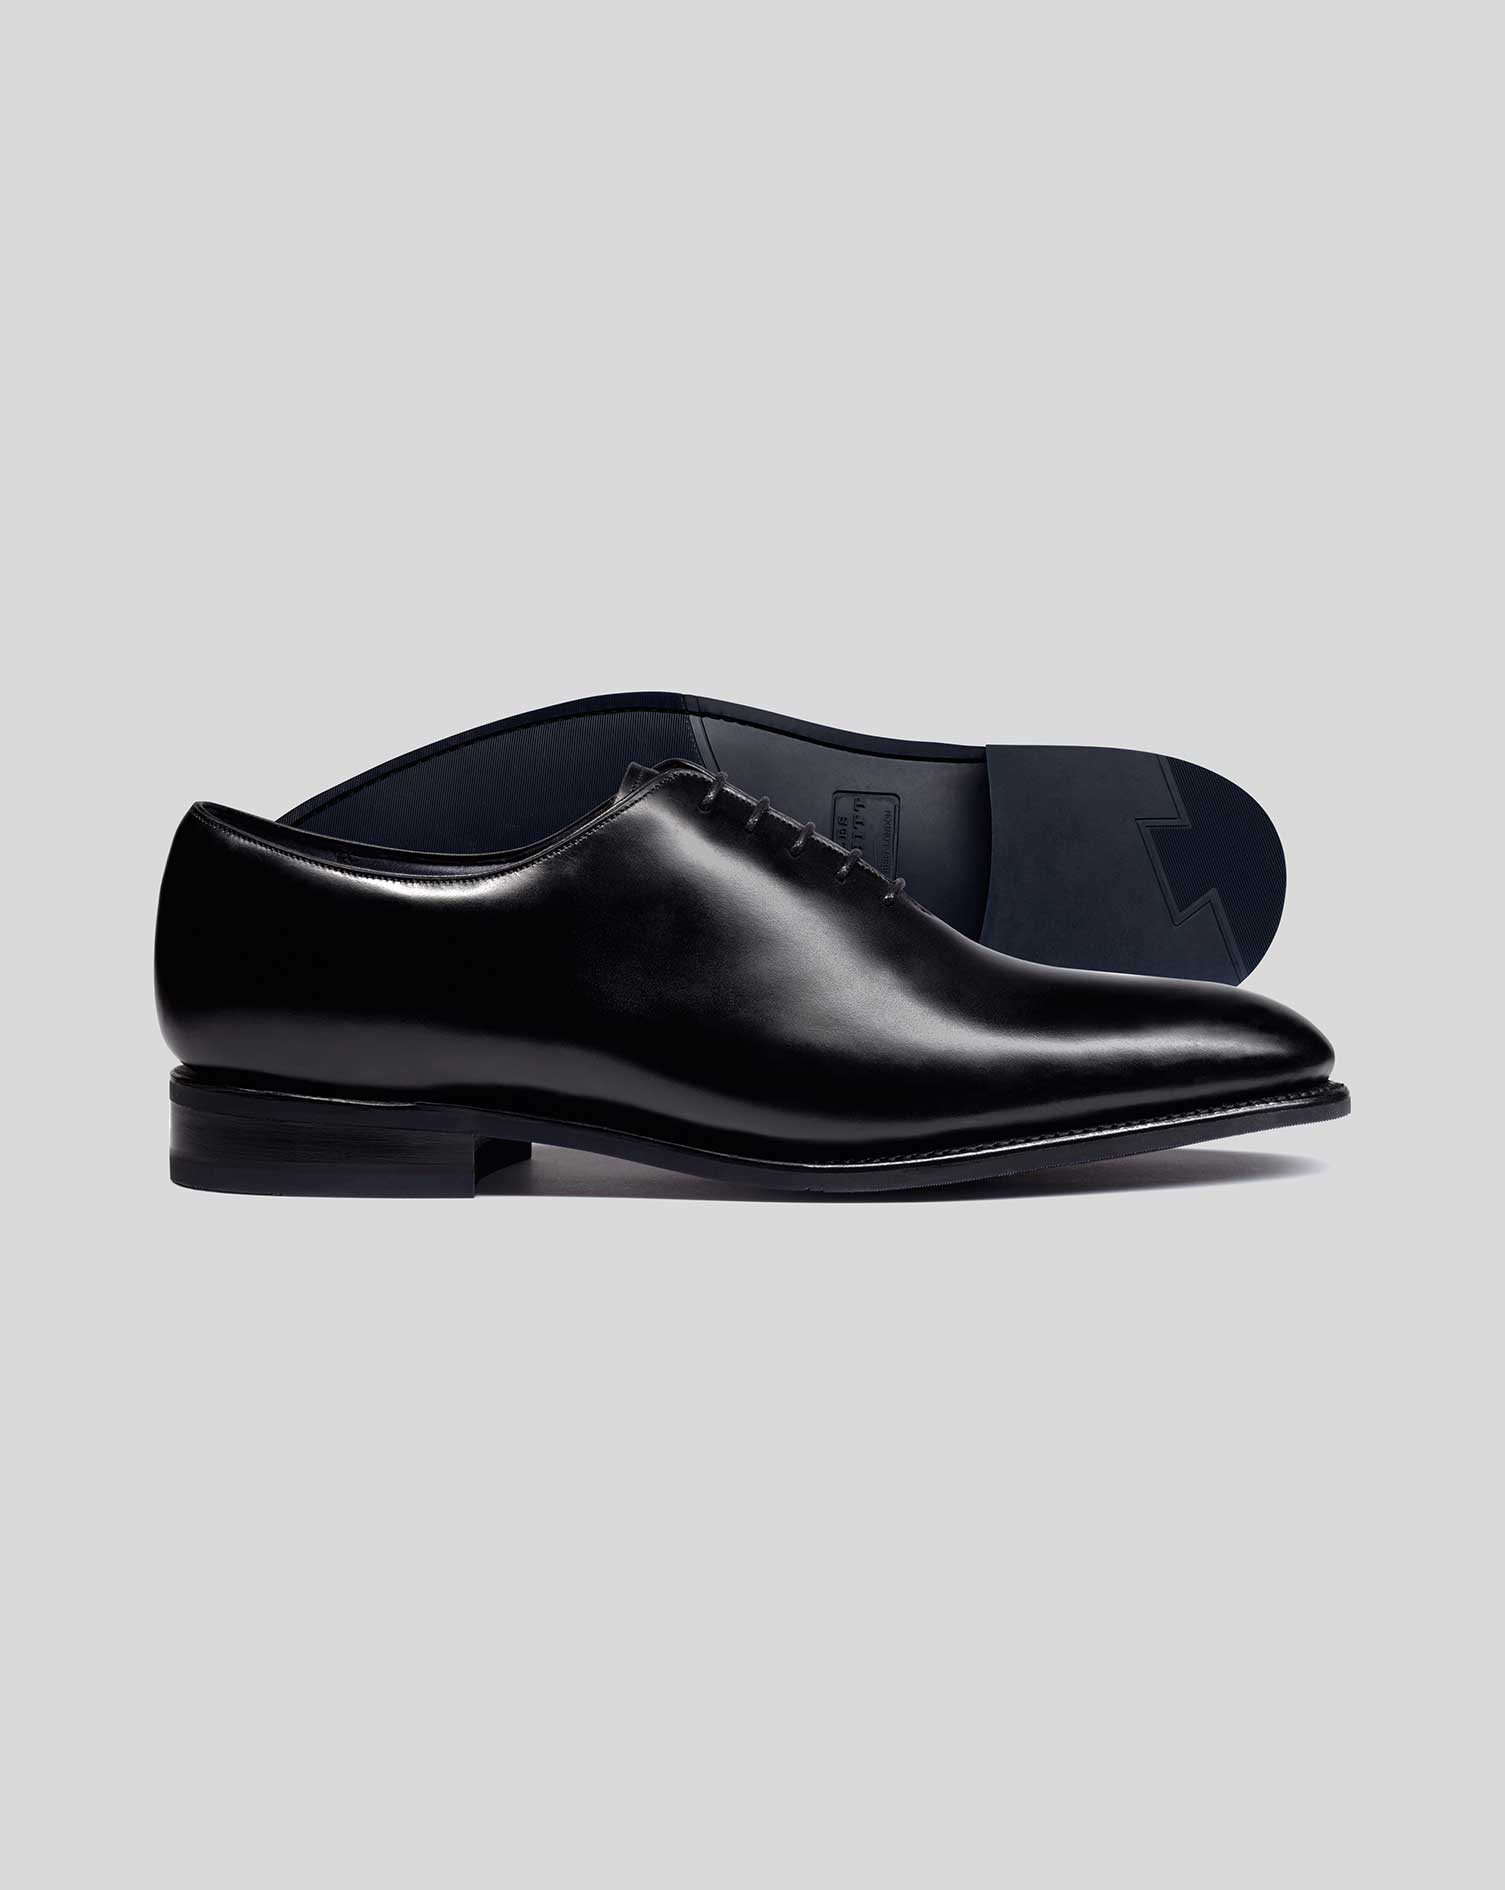 Black Goodyear Welted Wholecut Performance Shoe Size 6 R by Charles Tyrwhitt